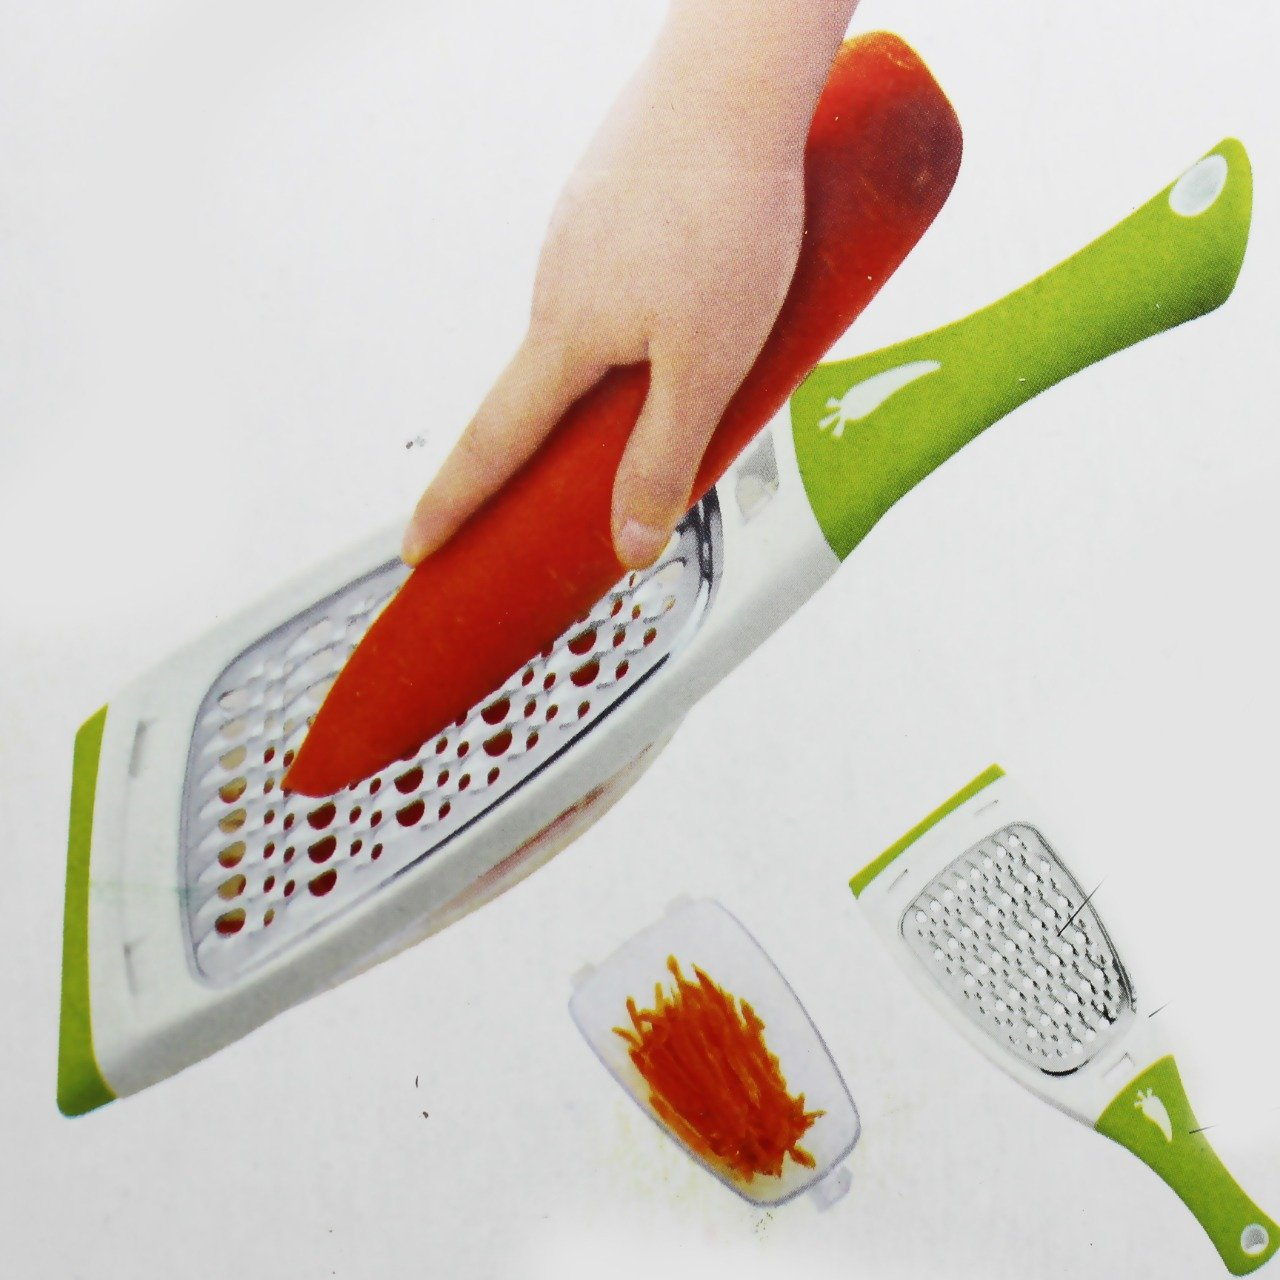 Fruit Slicer for Kitchen Use - waseeh.com